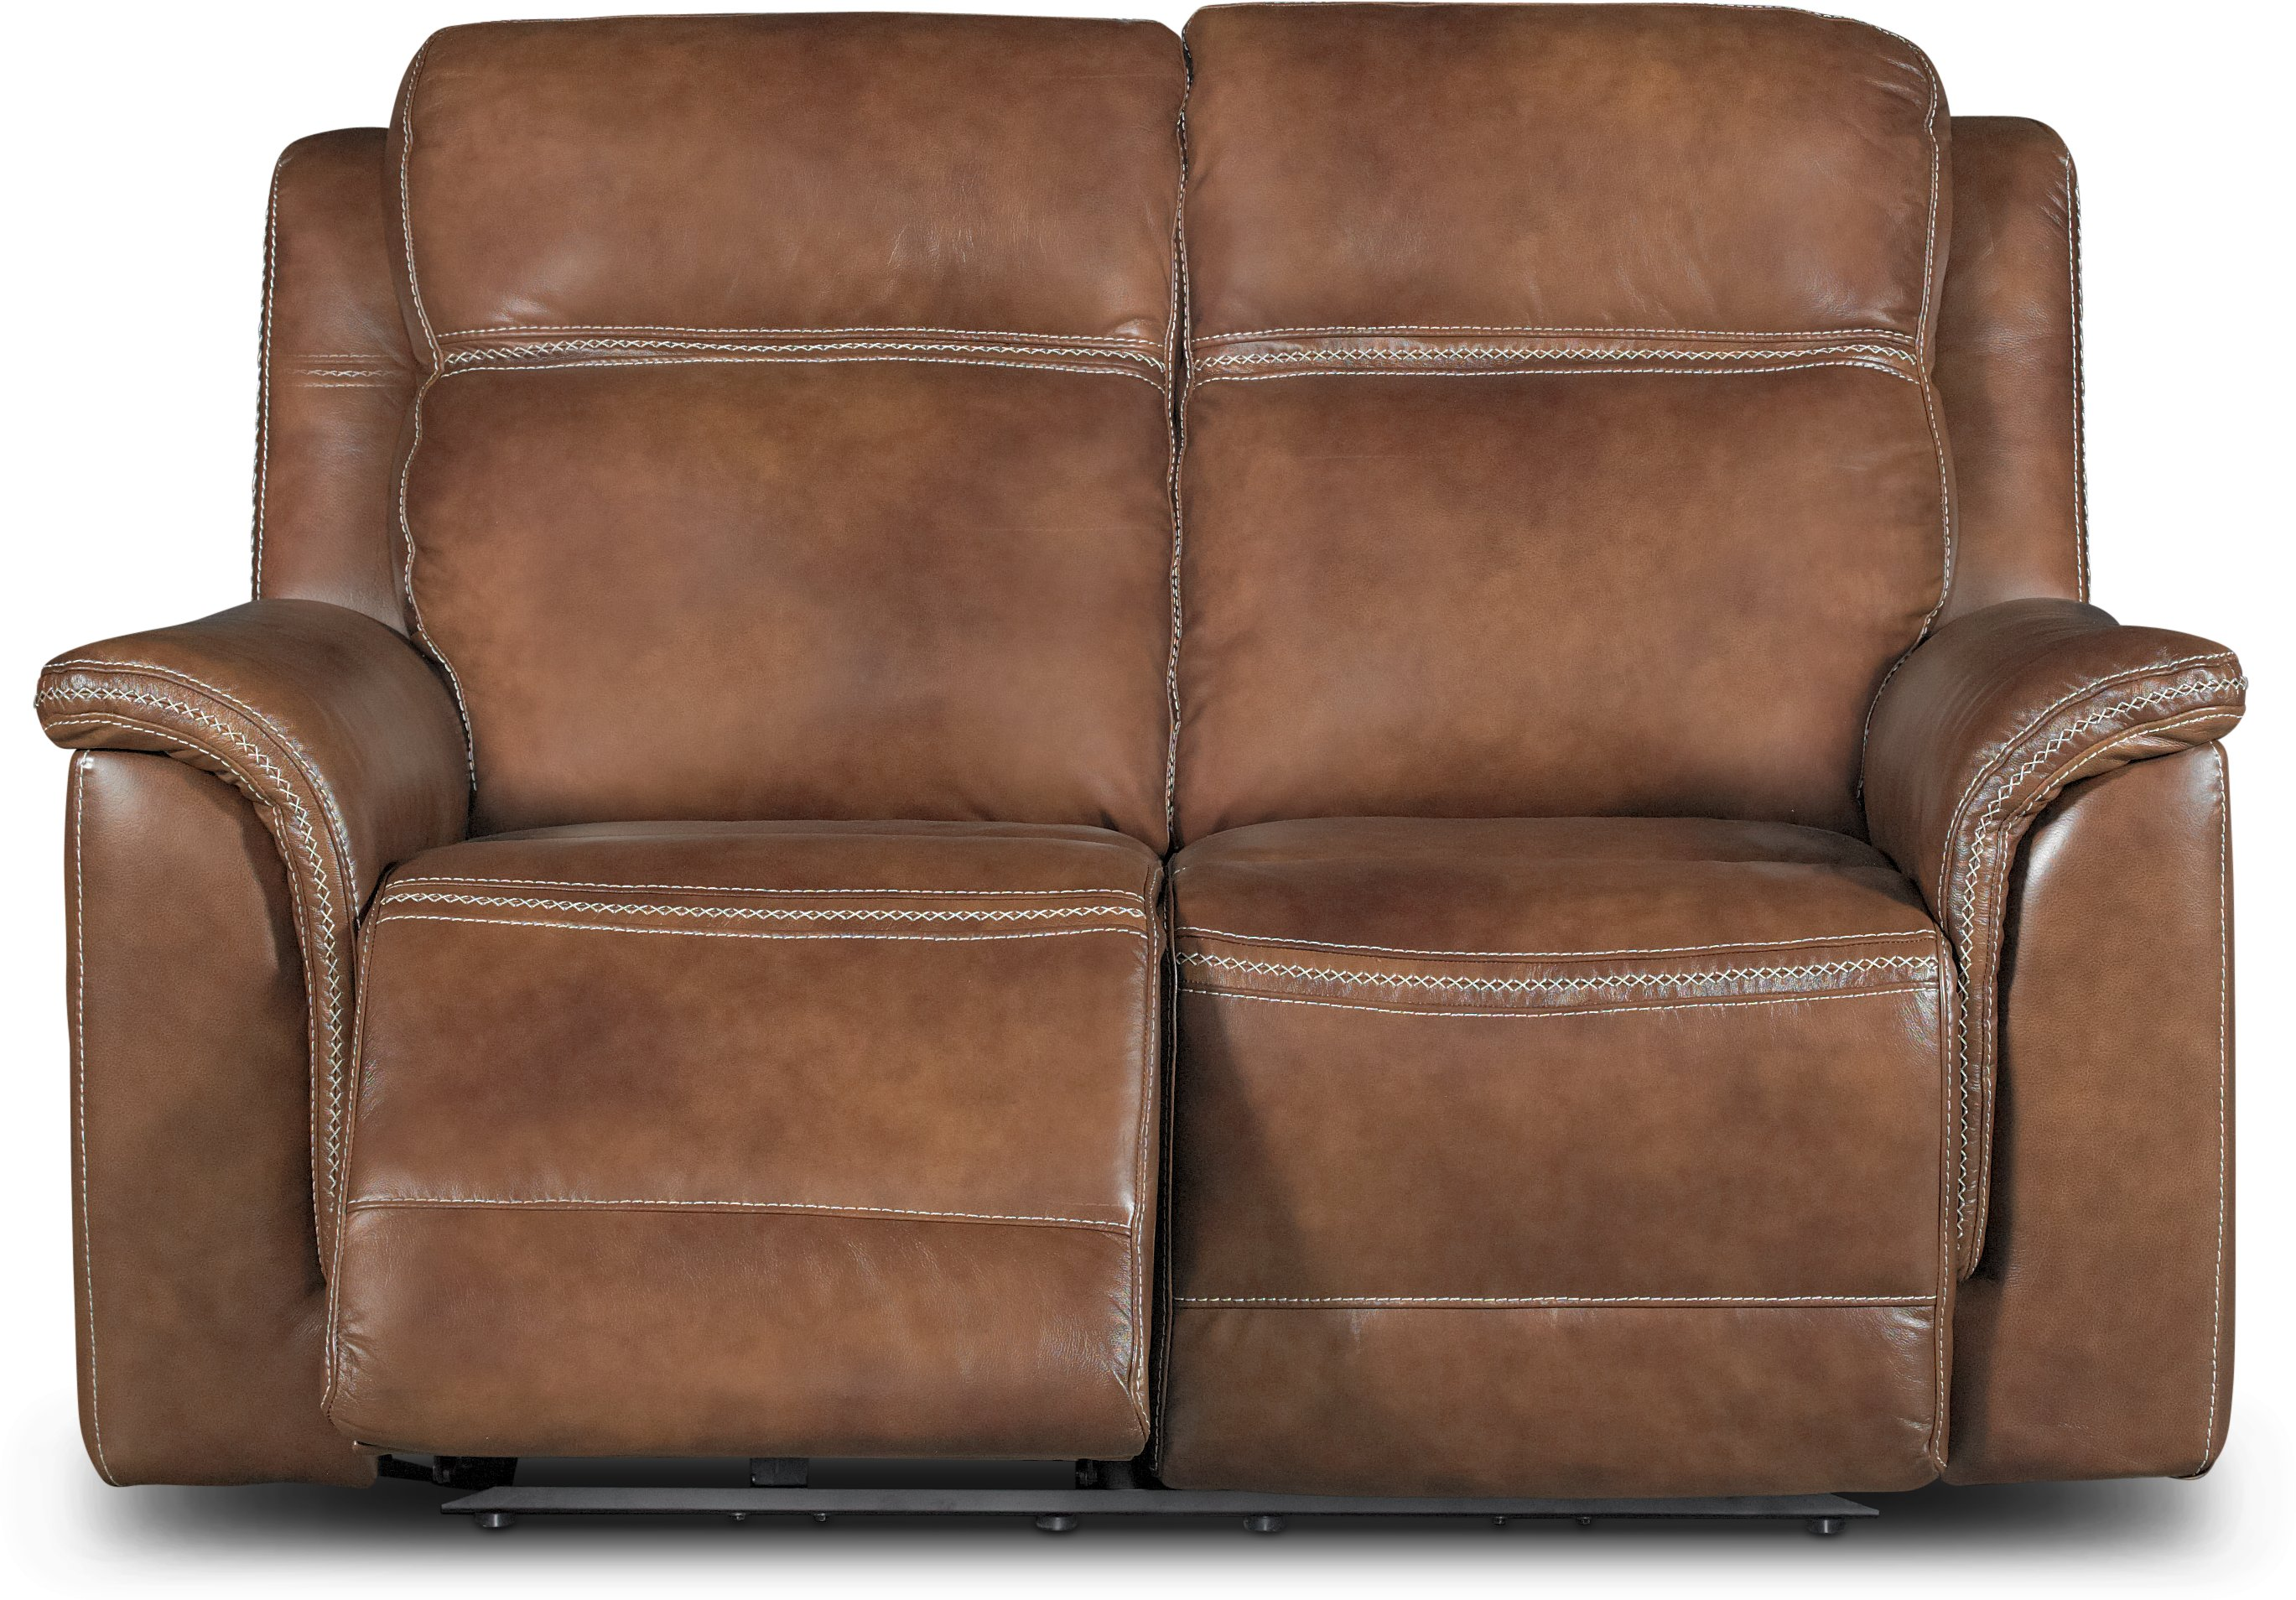 Pacific Oak Brown Leather Match Power Reclining Sofa Loveseat  ~ All Leather Sofa And Loveseat